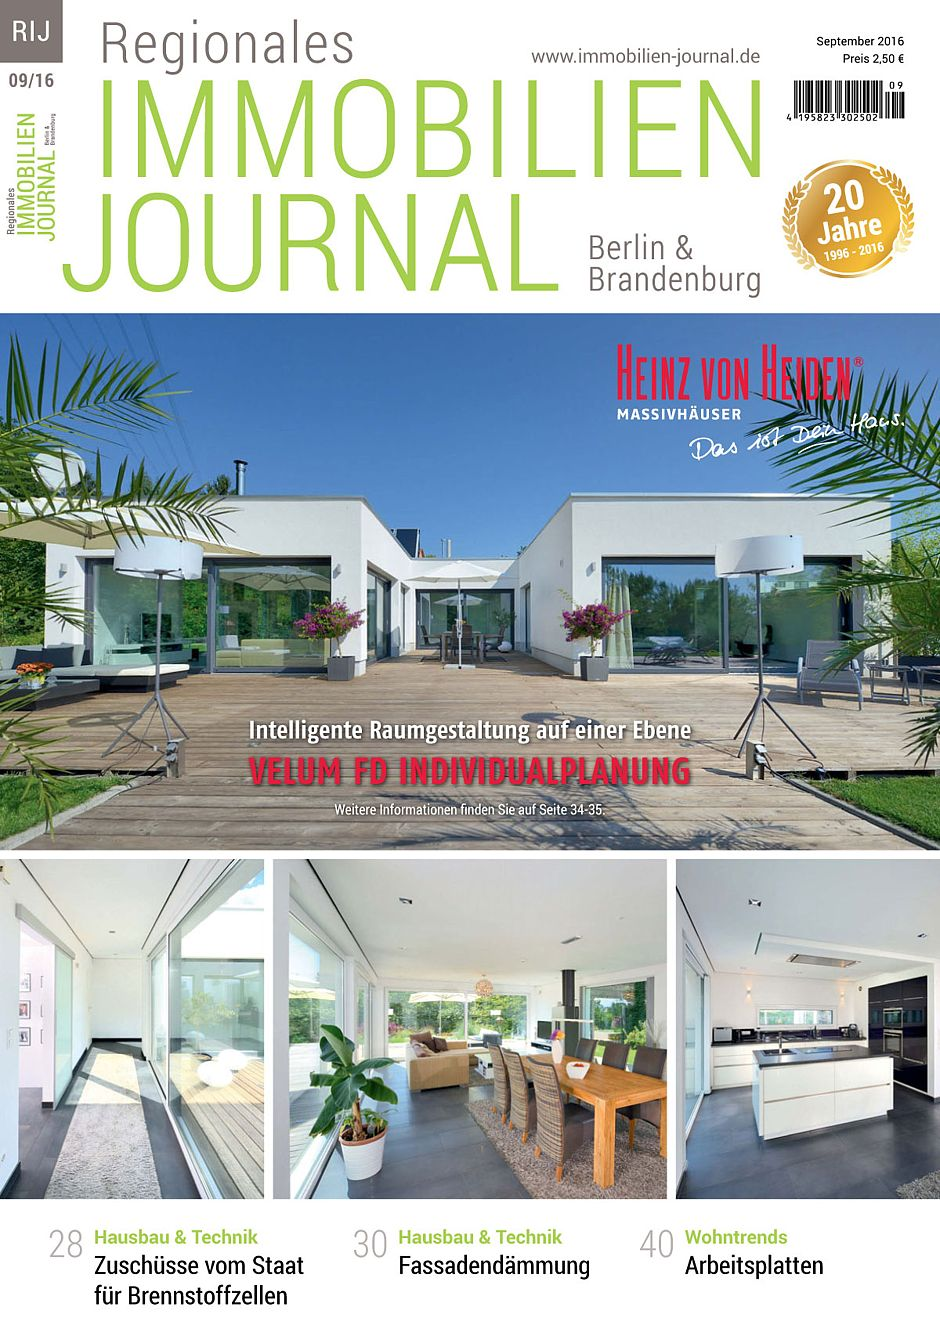 Regionales immobilien journal berlin brandenburg for Hausbaufirmen brandenburg